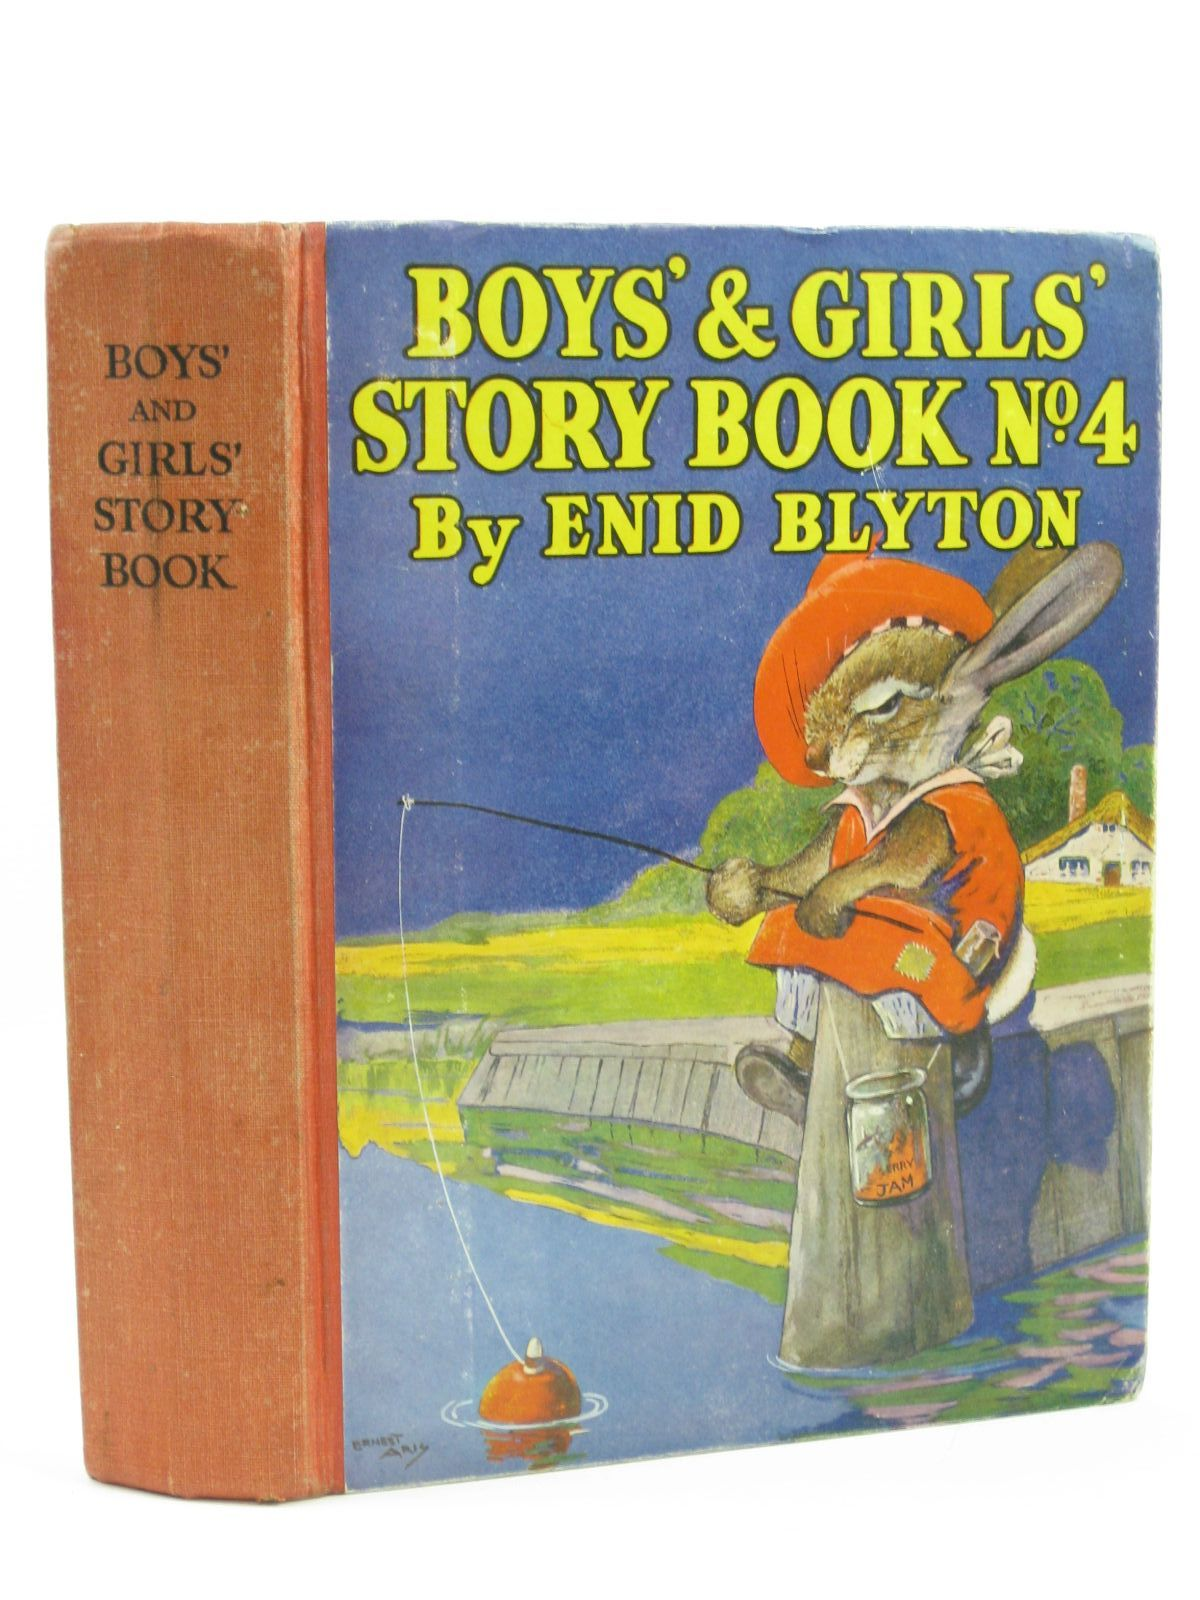 Photo of BOYS' AND GIRLS' STORY BOOK NO. 4 written by Blyton, Enid illustrated by Aris, Ernest A. Venus, Sylvia Davie, E.H. Robinson, Gordon published by News Chronicle Ltd. (STOCK CODE: 1406445)  for sale by Stella & Rose's Books